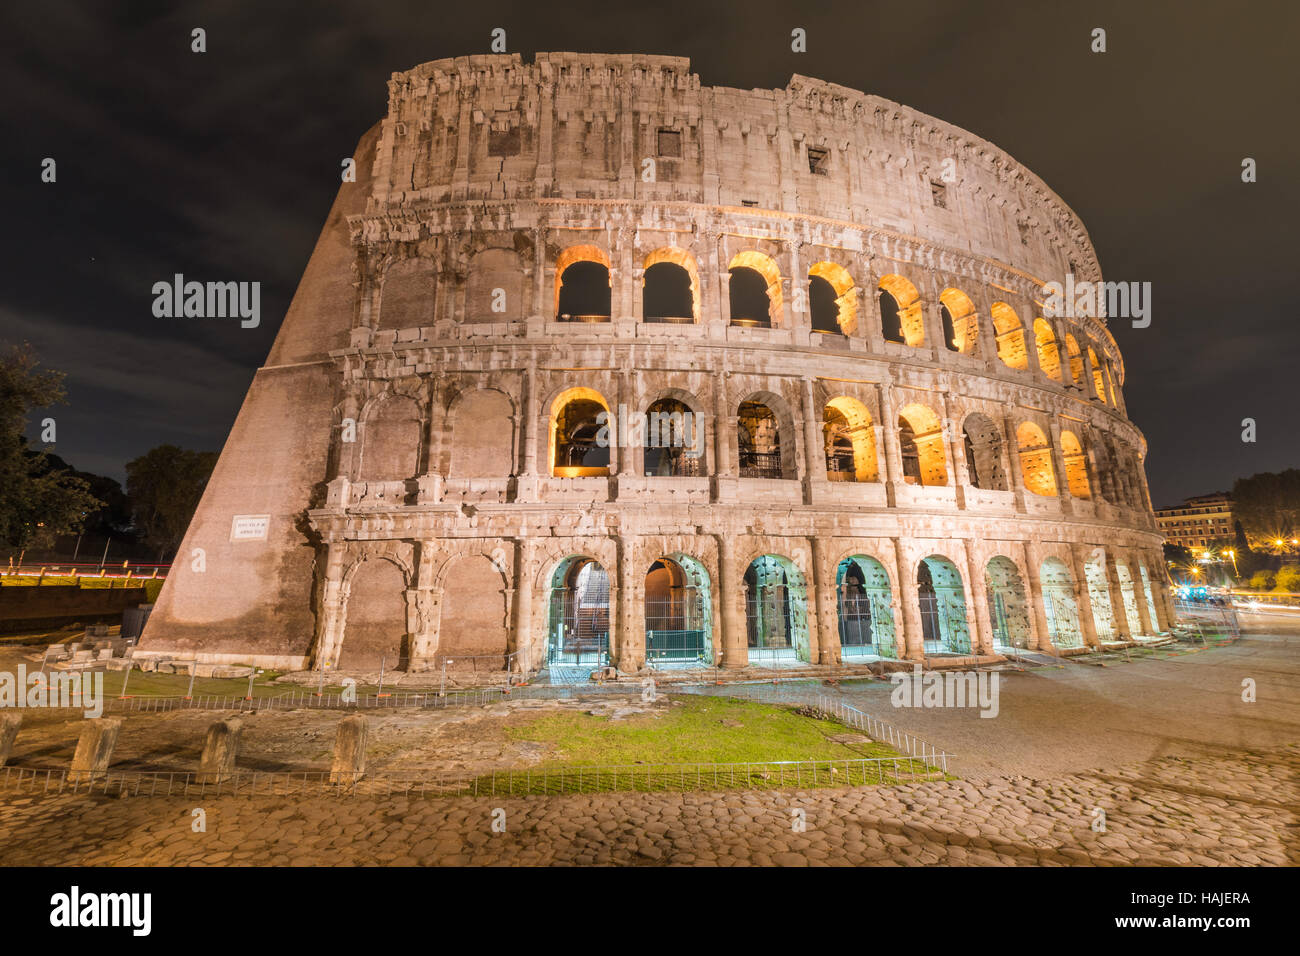 Rome, Italy - The archeological area in historic center - Stock Image